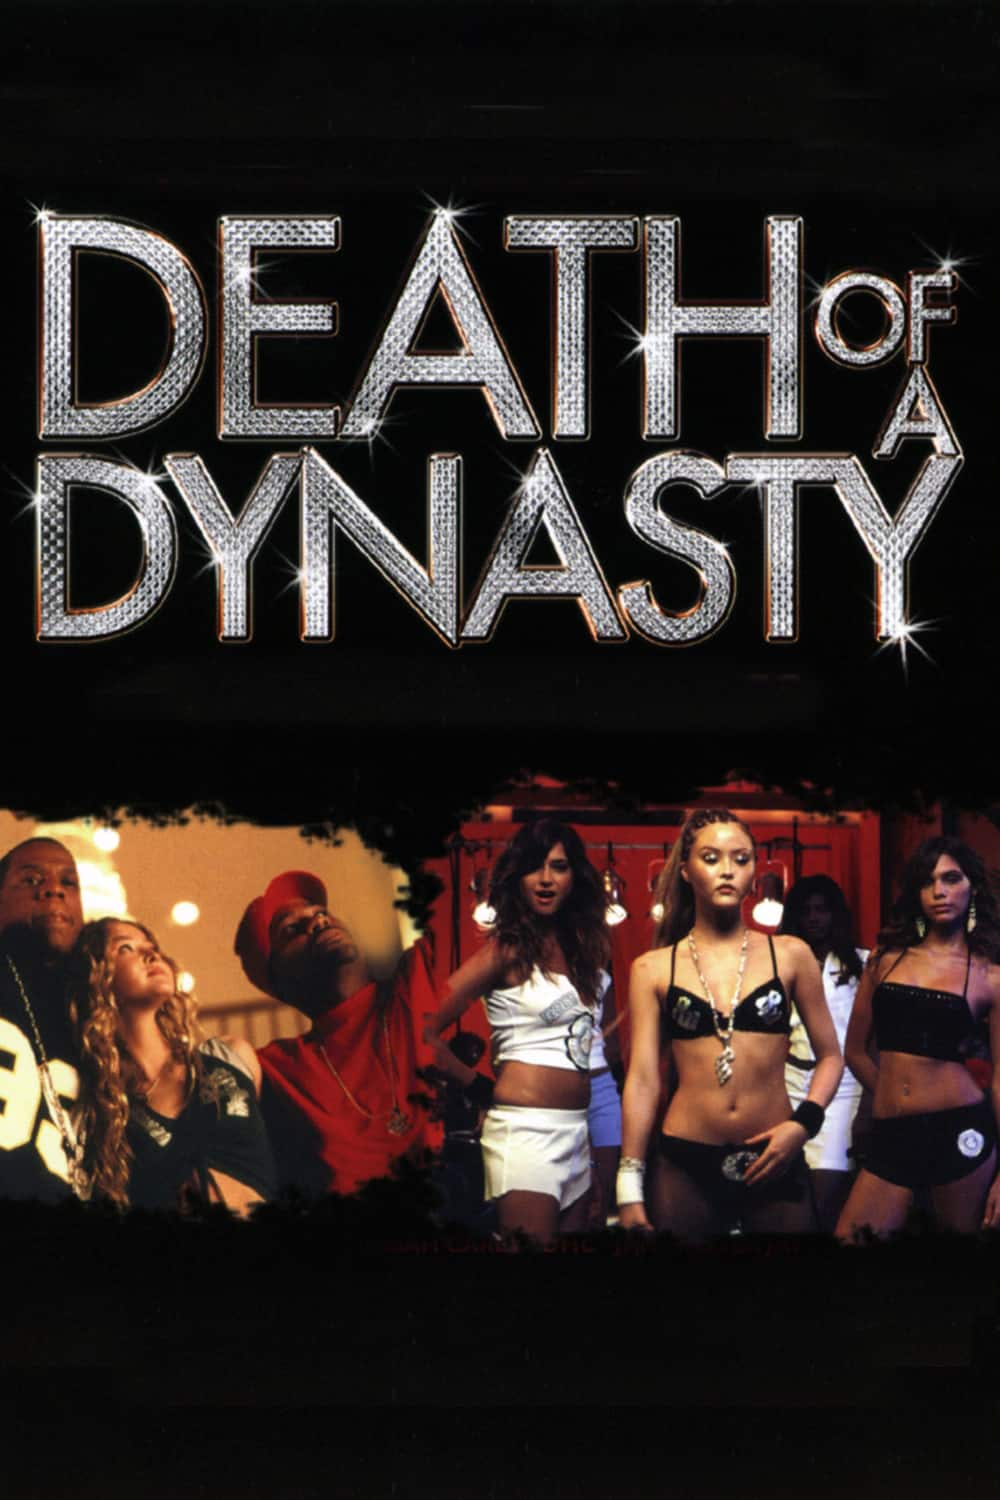 Death of a Dynasty, 2003